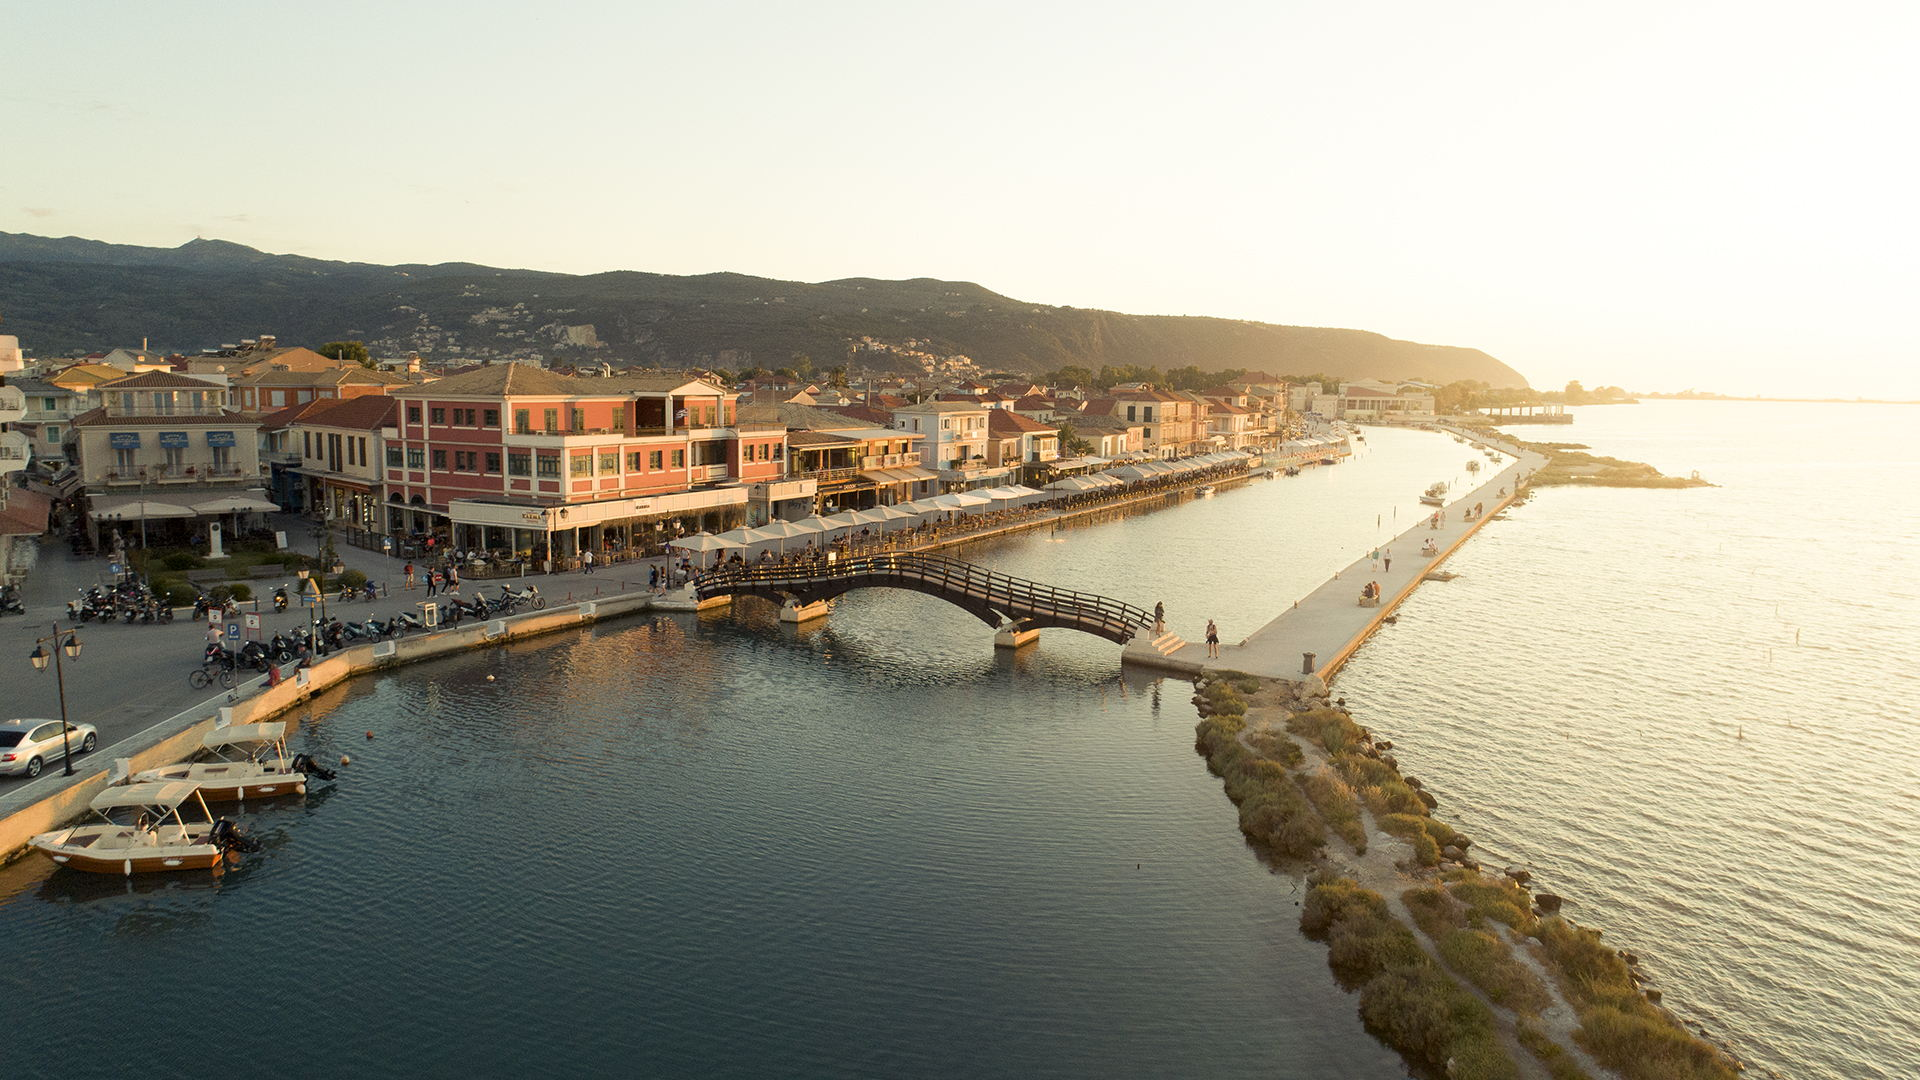 Take a stroll around town of Lefkada and enjoy the sunset